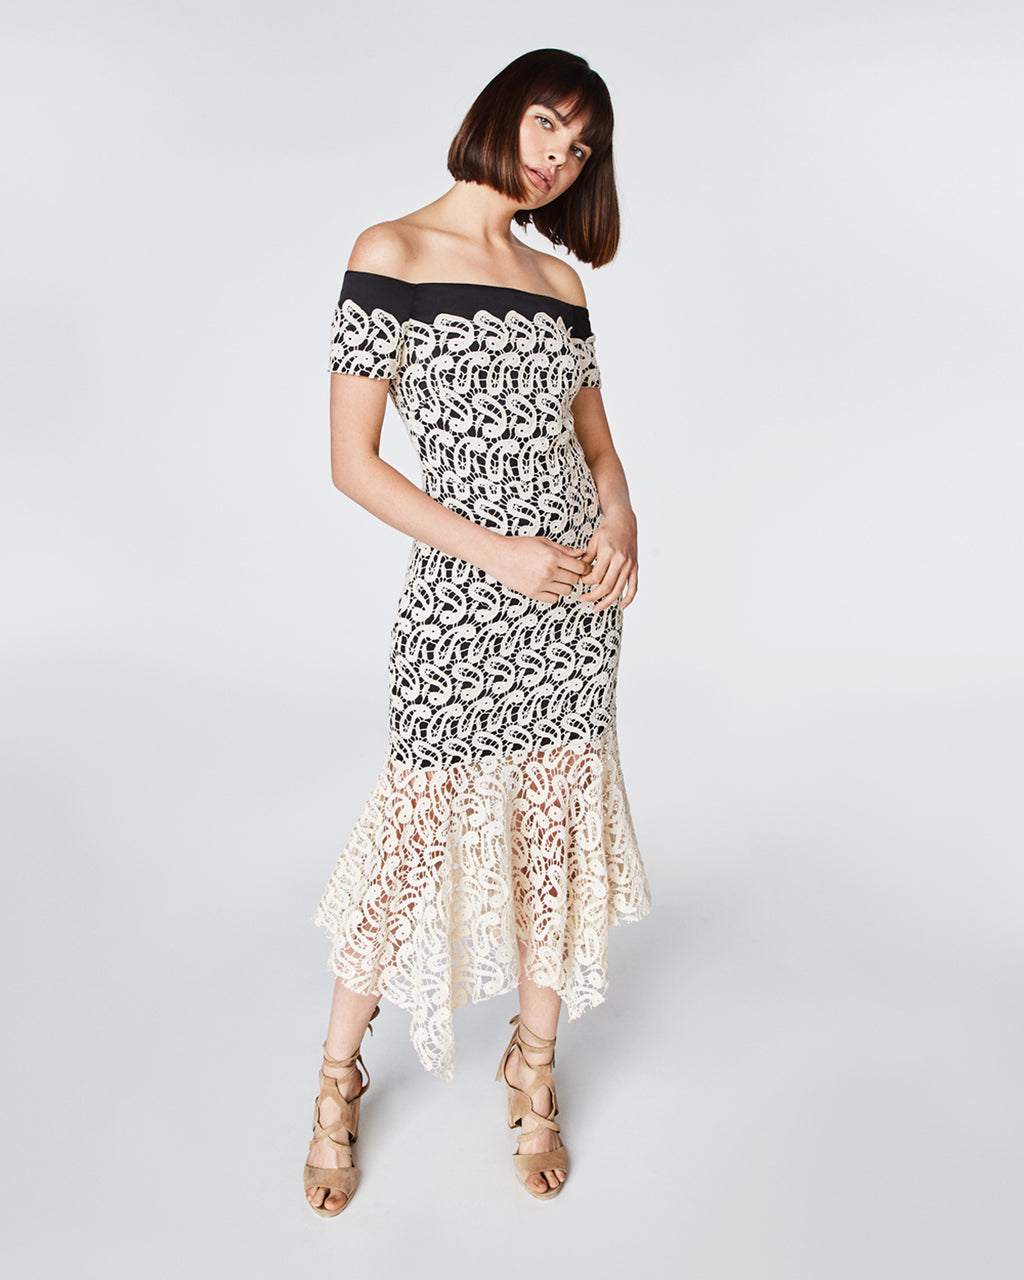 CF10226 - BARDOT DRESS - dresses - midi - In an off the shoulder silhouette, this midi dress features white lace with a contrasting black lining. The unlined dress falls to a mid-calf length at an asymmetrical hemline. Pair with a simple black sandal for a completed look. Final Sale